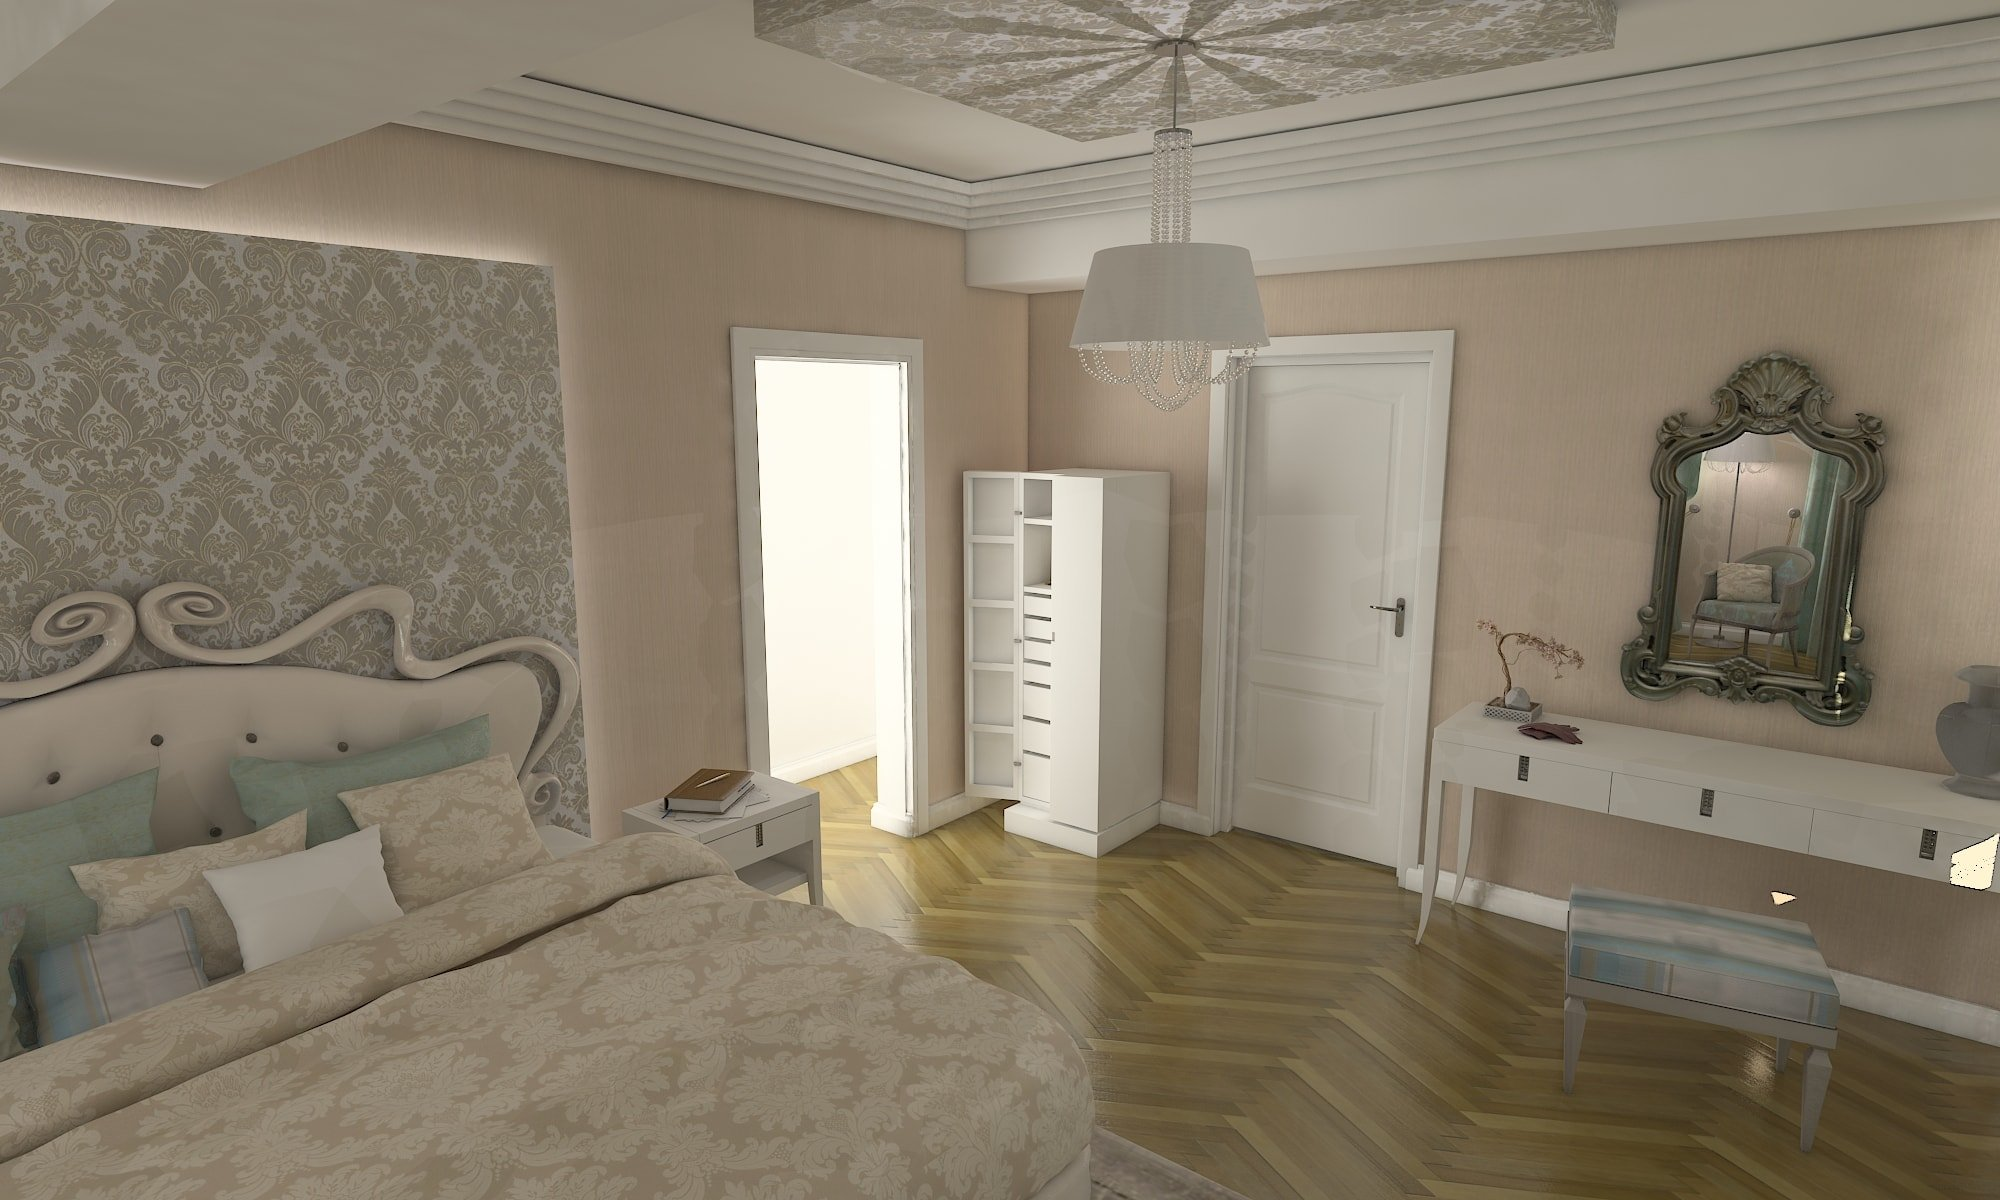 Casa braila design interior proiectare 3D Studio Insign